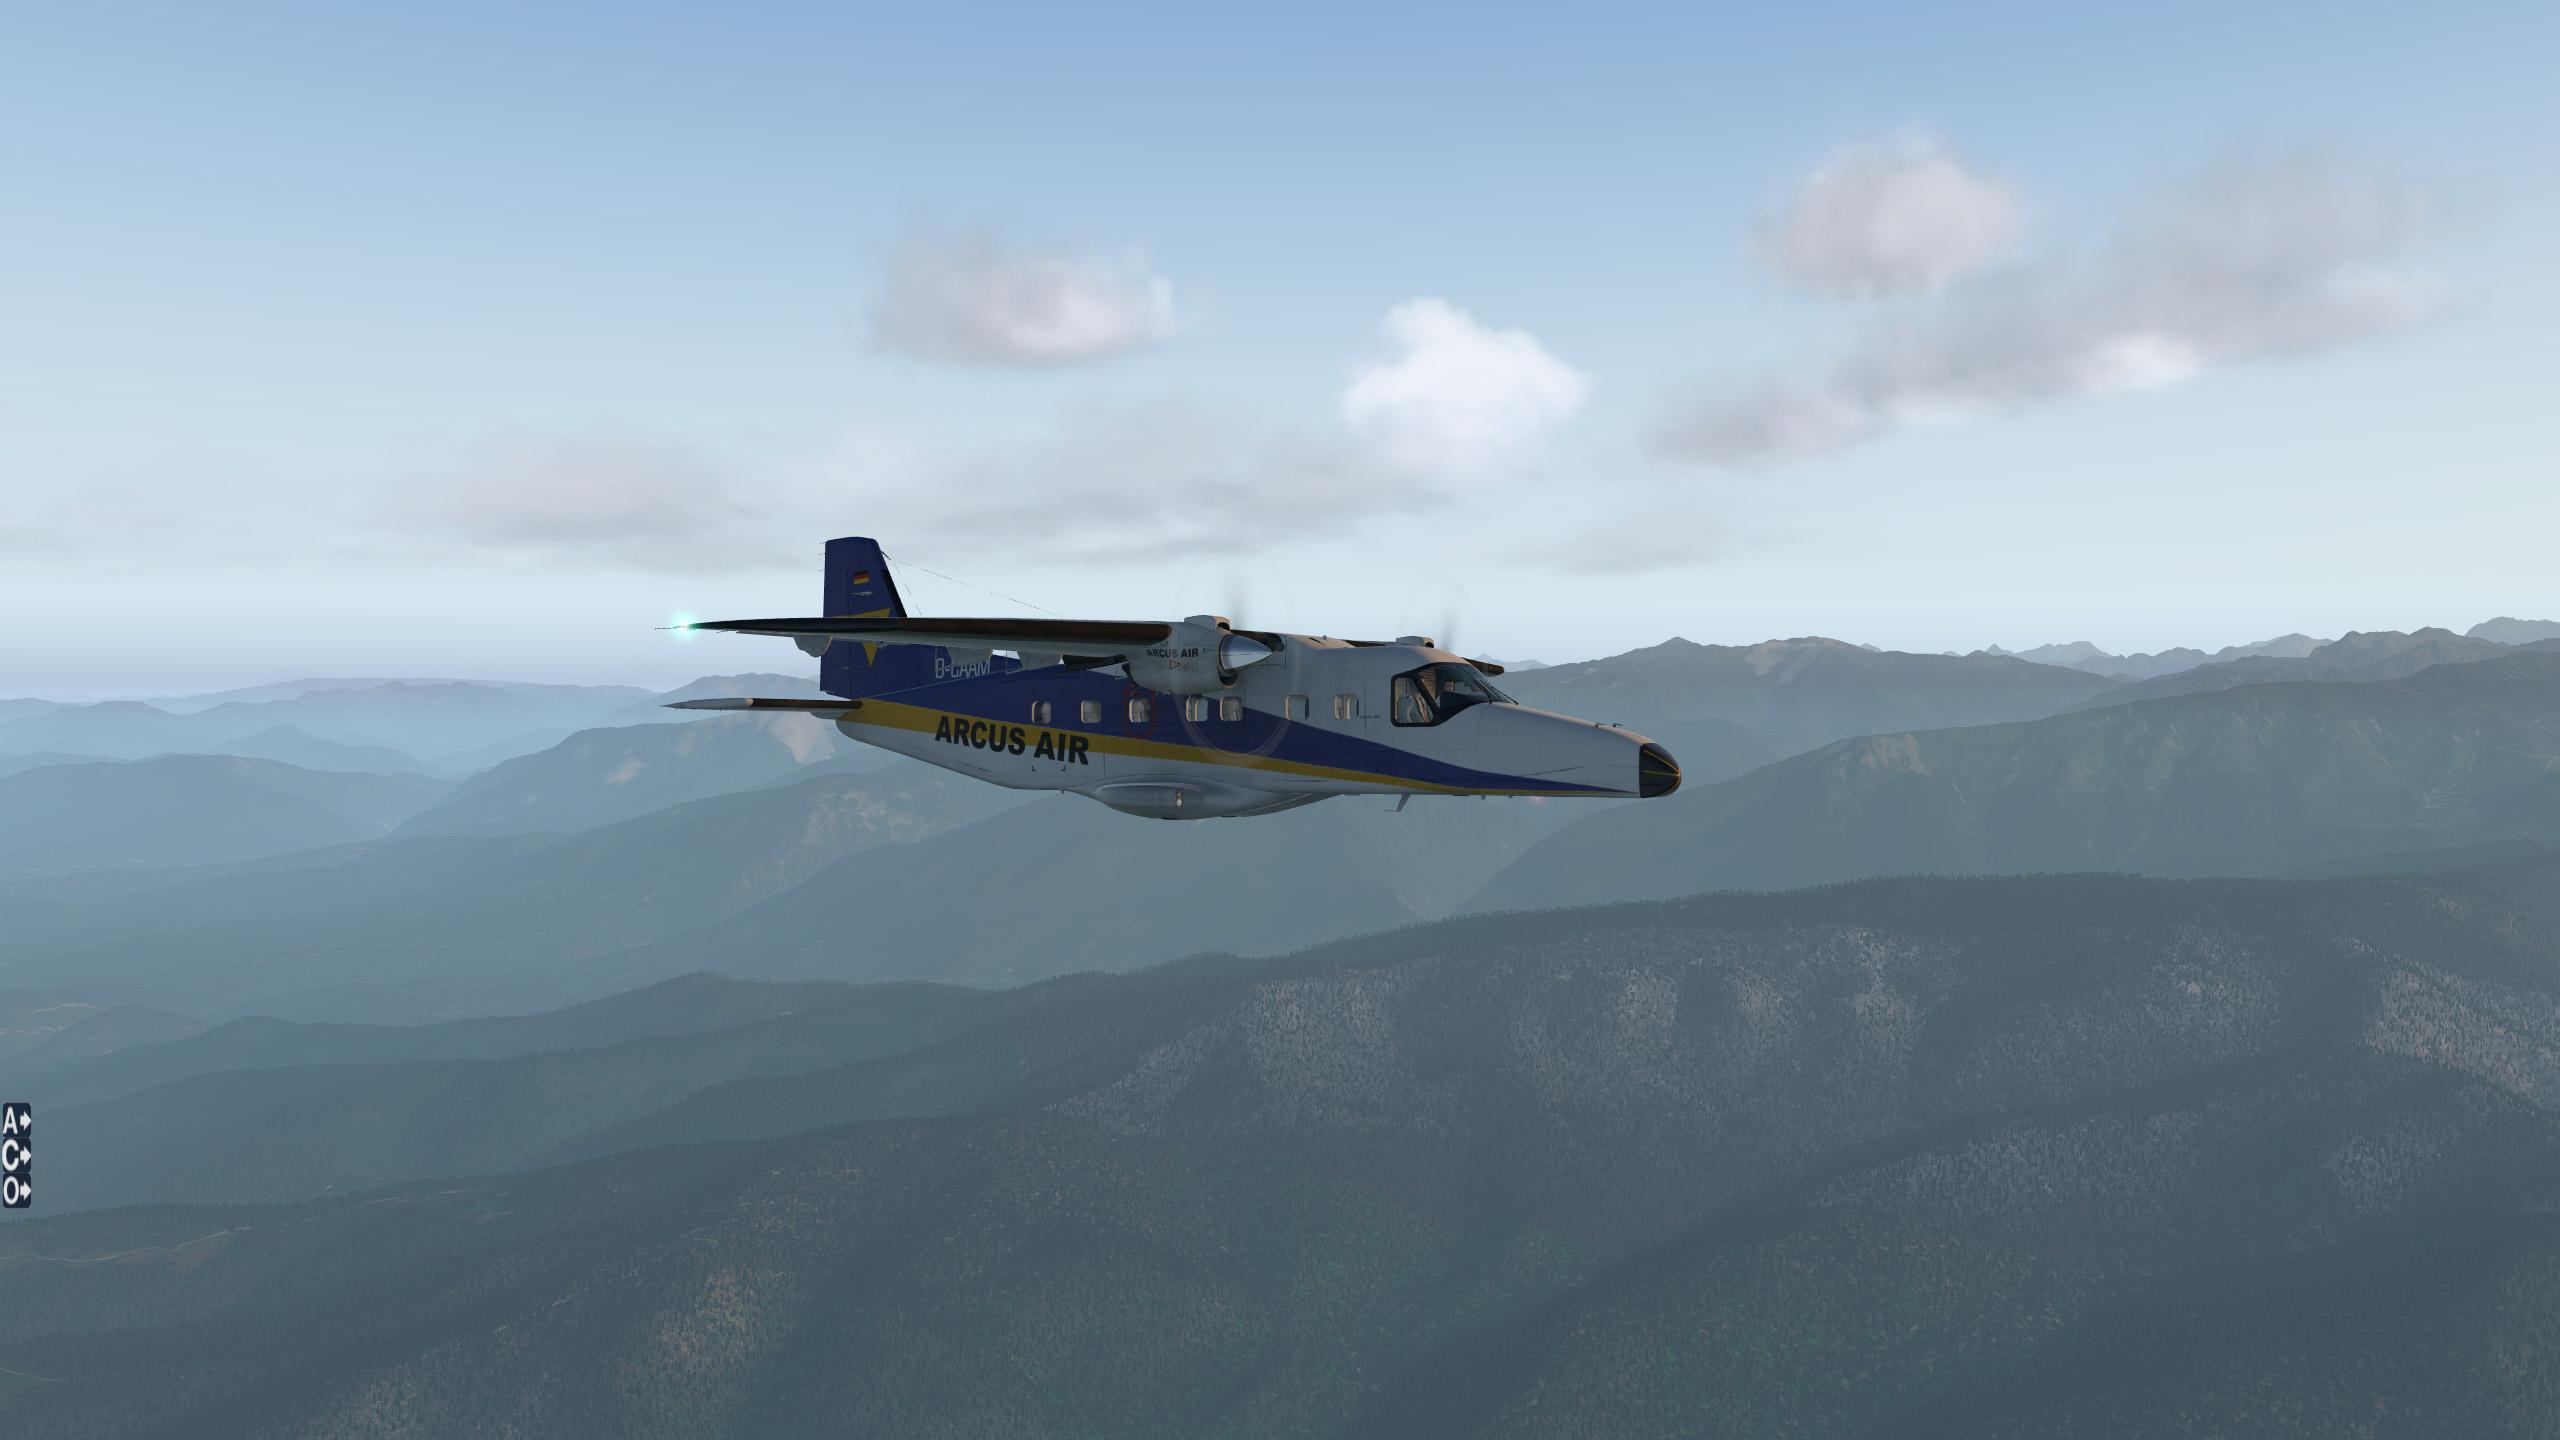 Carenado Do228 Repaint D-CAAM ARCUS AIR - Carenado Paints - X-Plane